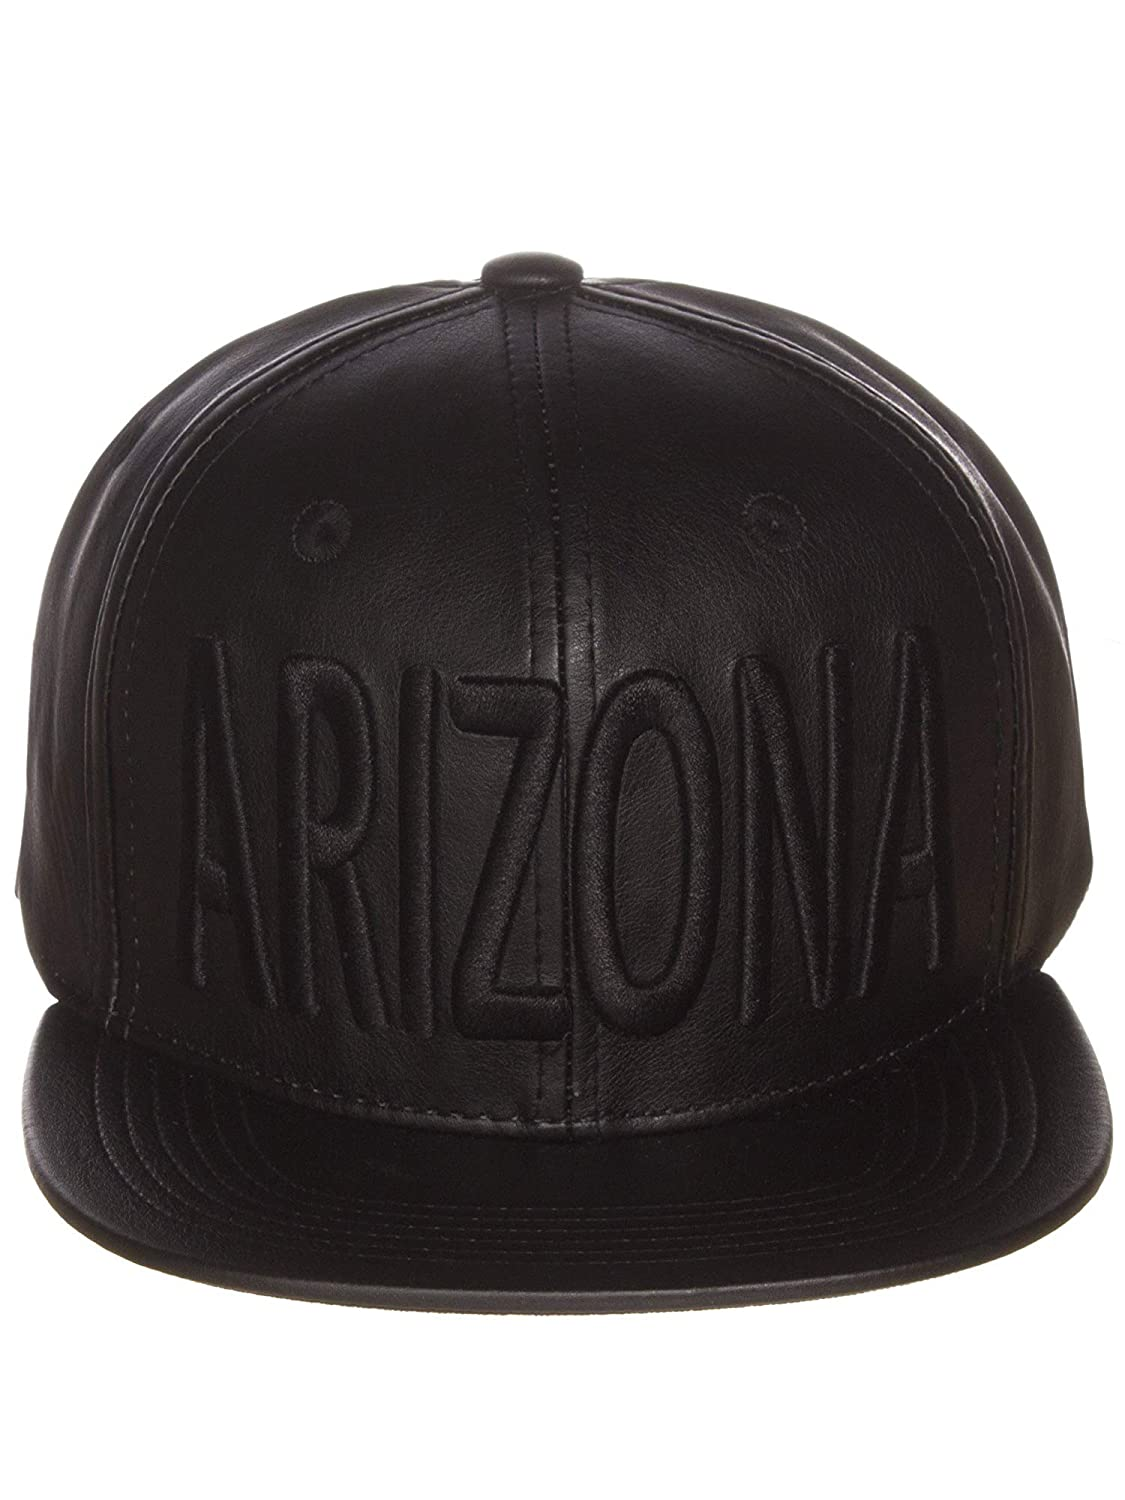 e29a7aeb5520 American cities faux leather arizona block embroidered letters flat snapback  cap hat clothing jpg 1125x1500 Leather